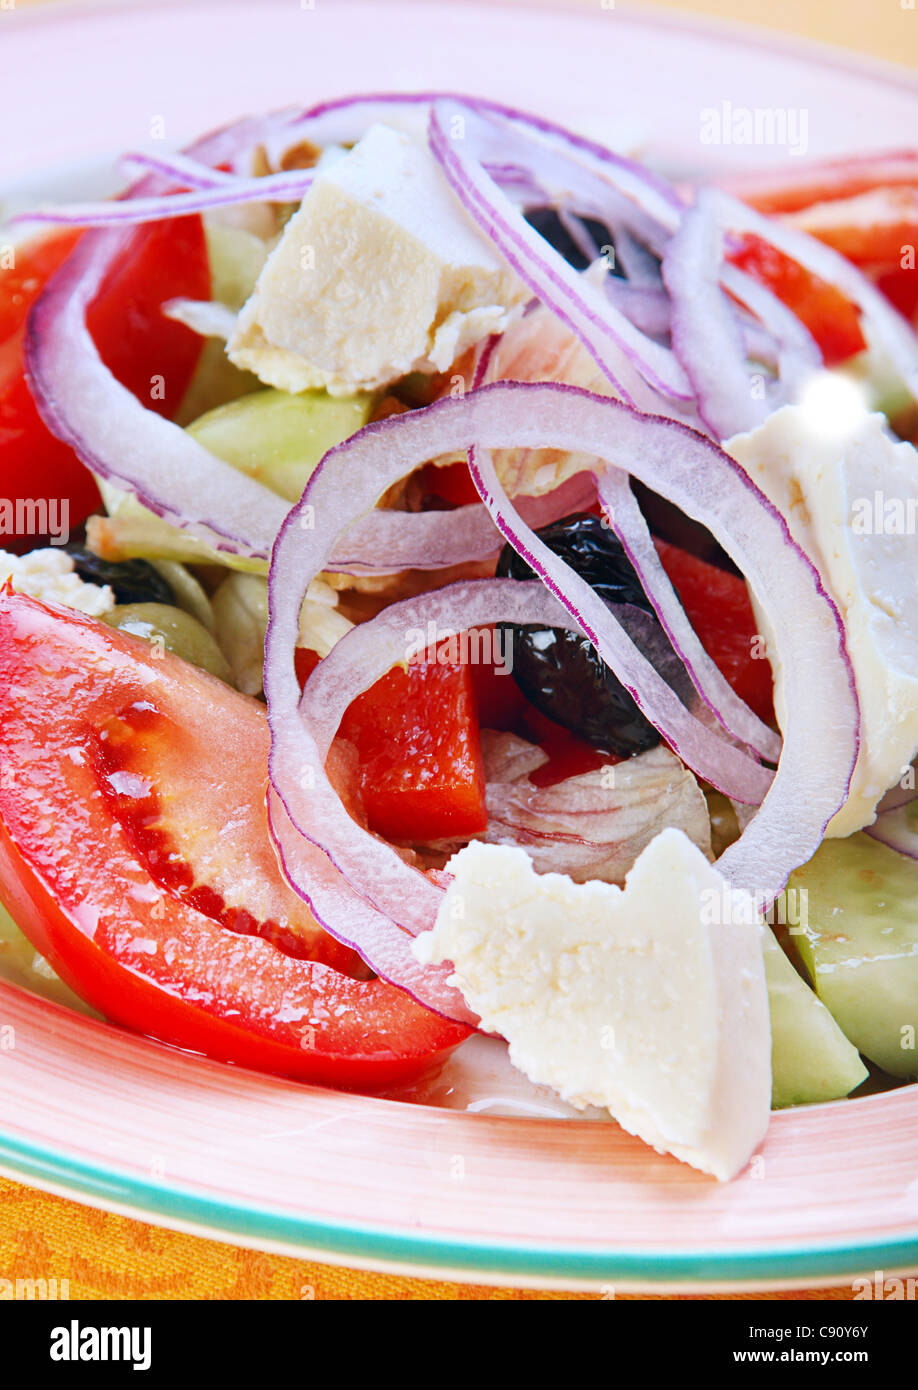 Salad with feta cheese and tomato - Stock Image